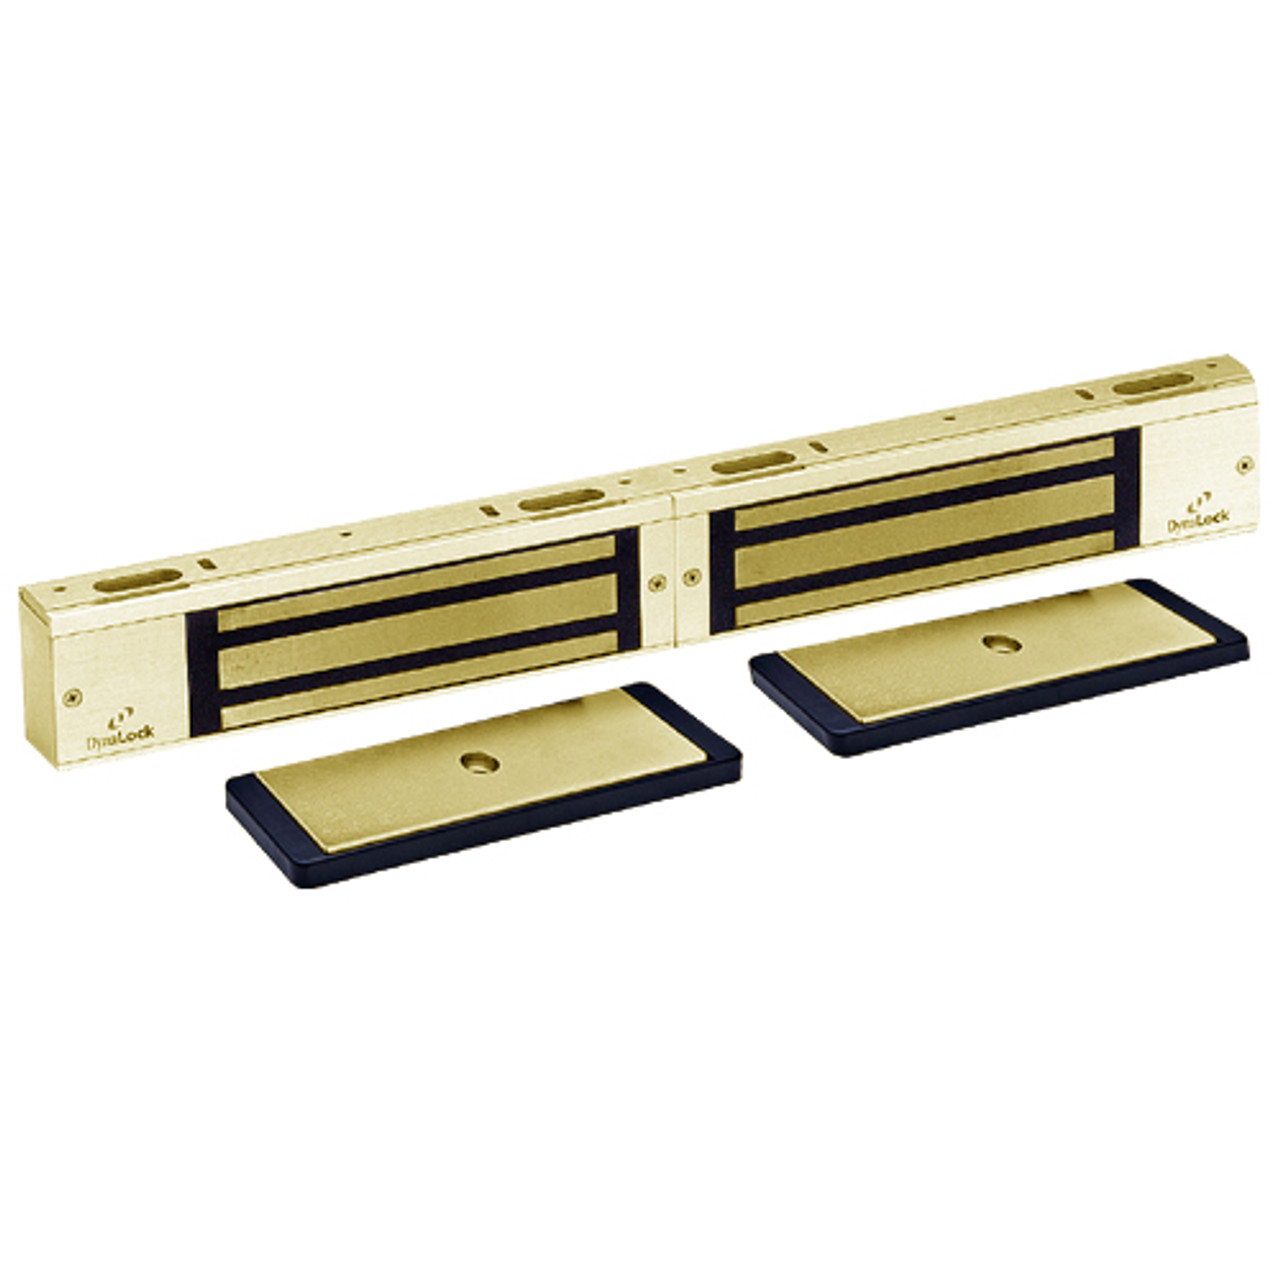 3002TJ32-US3-HSM2 DynaLock 3000 Series 1500 LBs Double Electromagnetic Lock for Inswing Door with HSM in Bright Brass